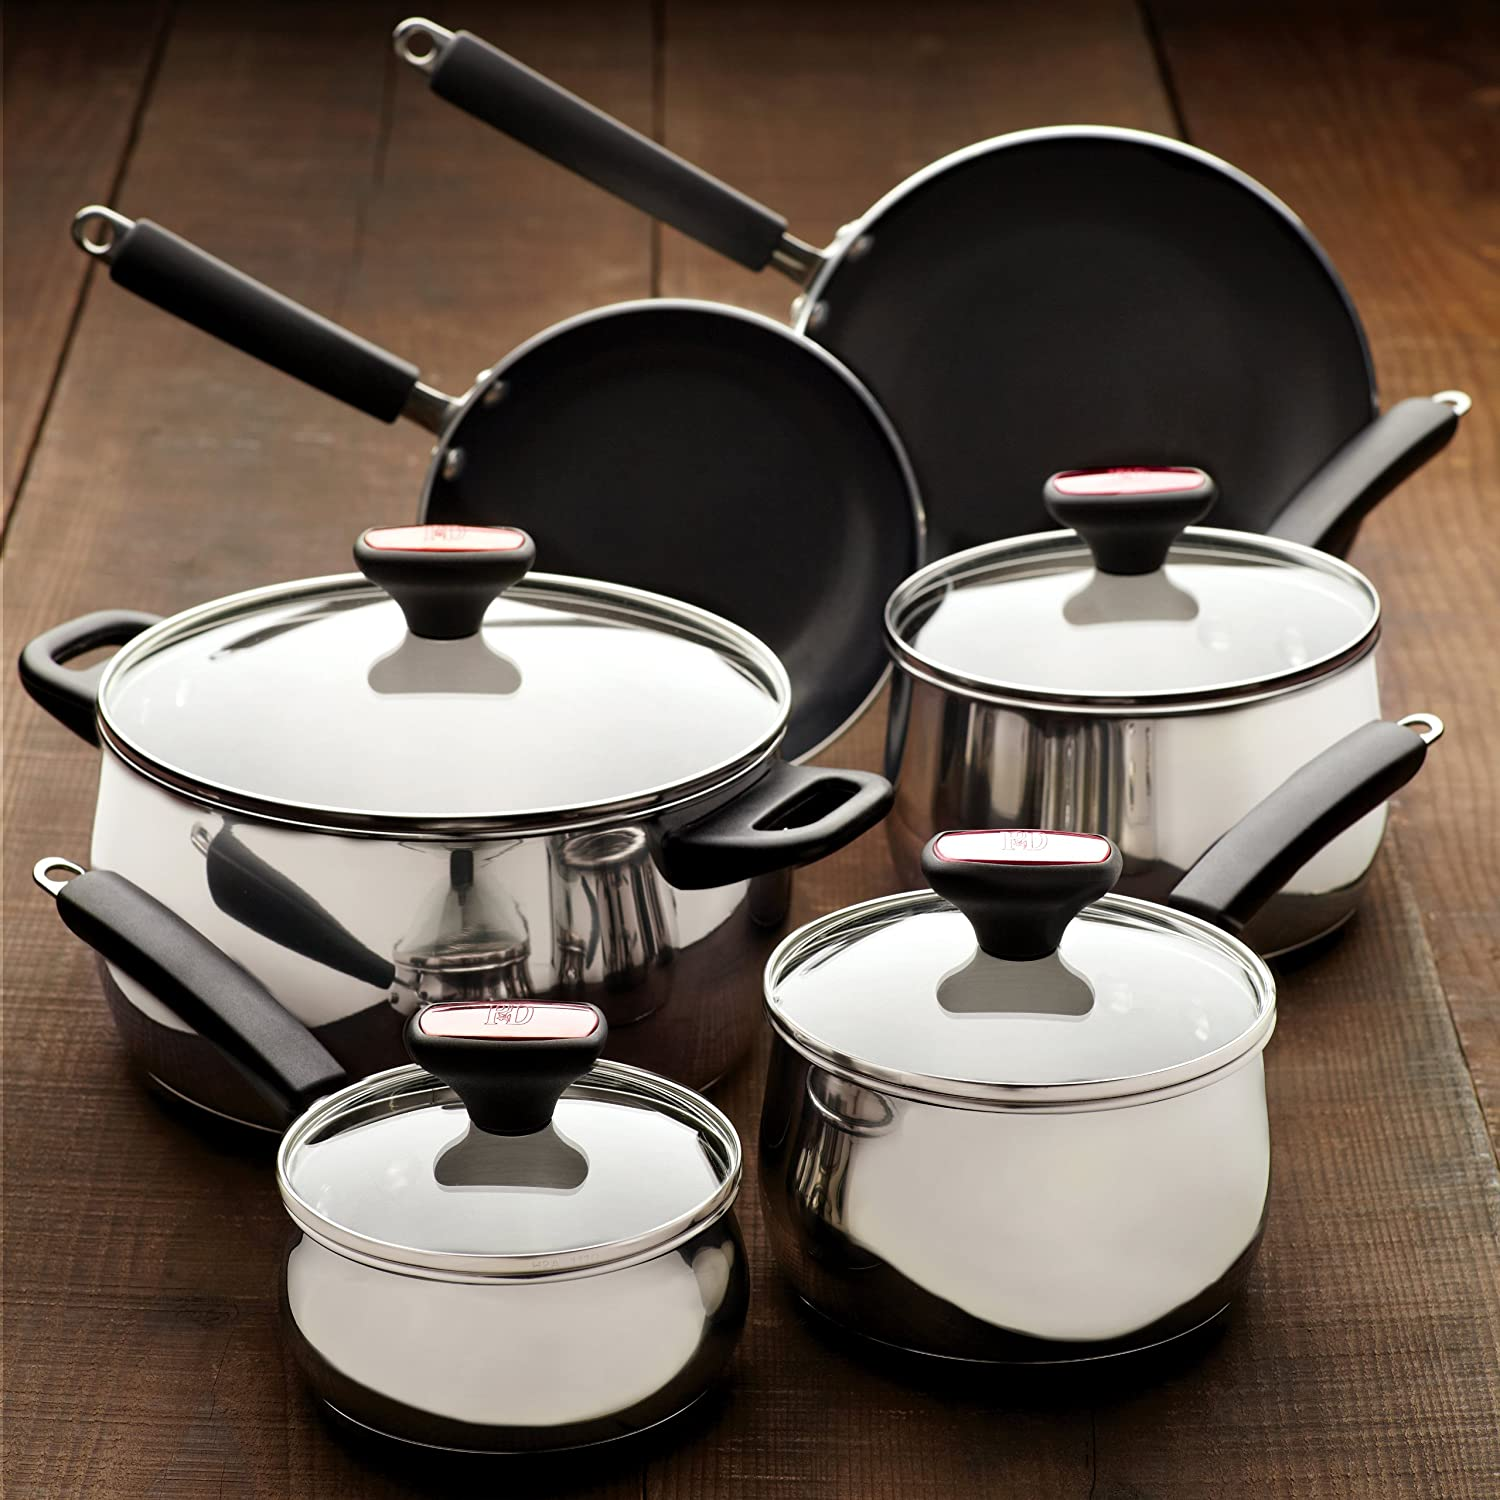 12 piece nonstick cookware set stainless steel aluminum cooking pots pan kitchen ebay. Black Bedroom Furniture Sets. Home Design Ideas